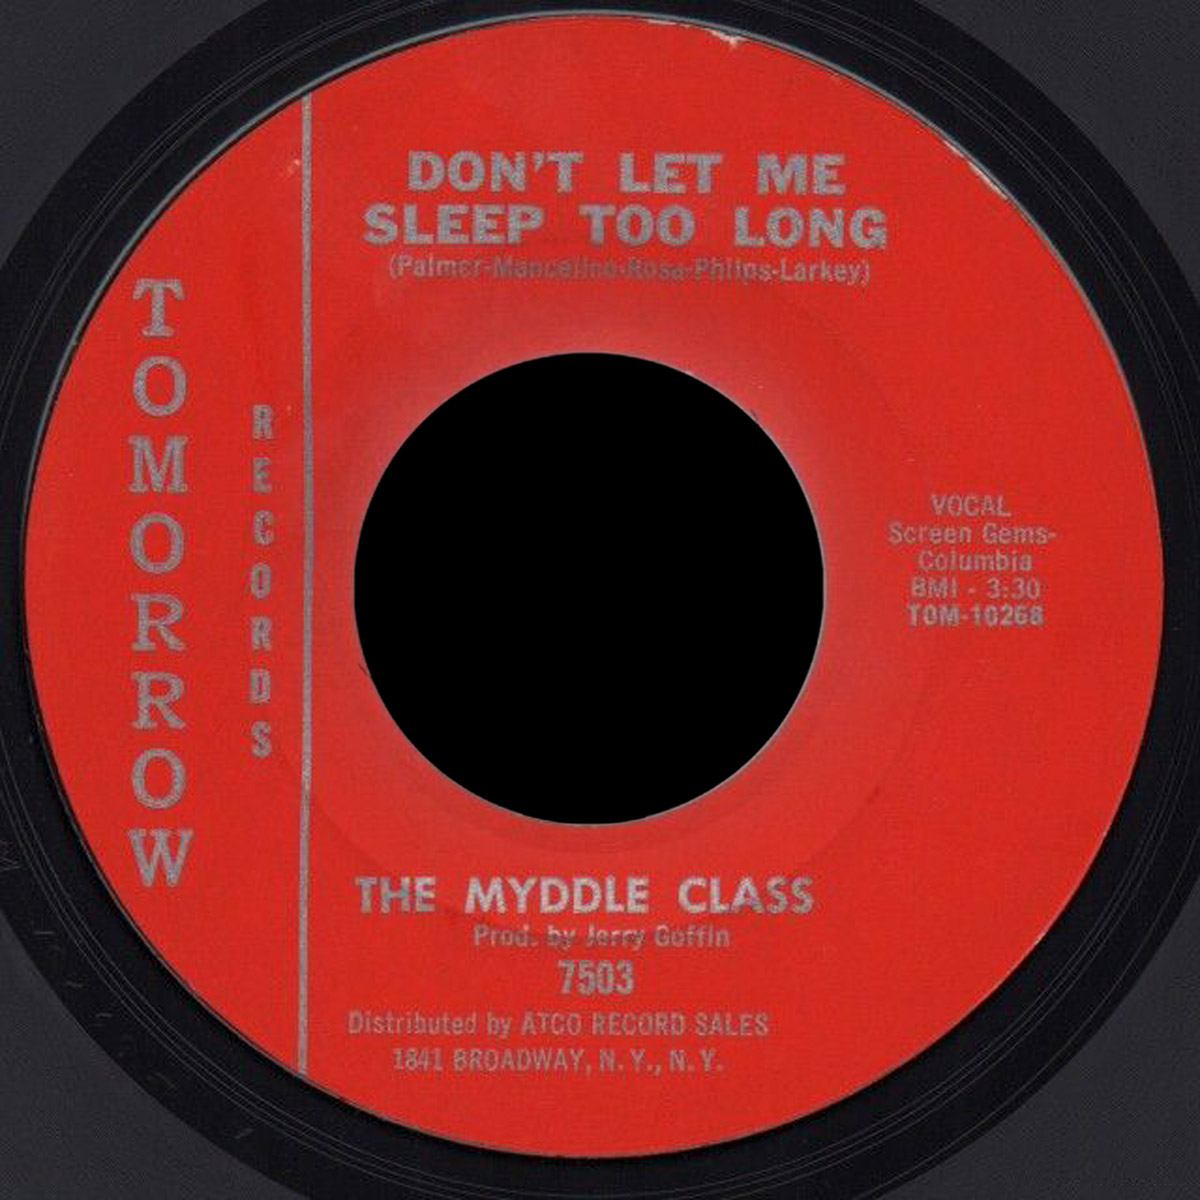 Myddle Class West coast pressing of their second 45, probably rush pressed when the song hit on KFXM in San Bernadino in October '66